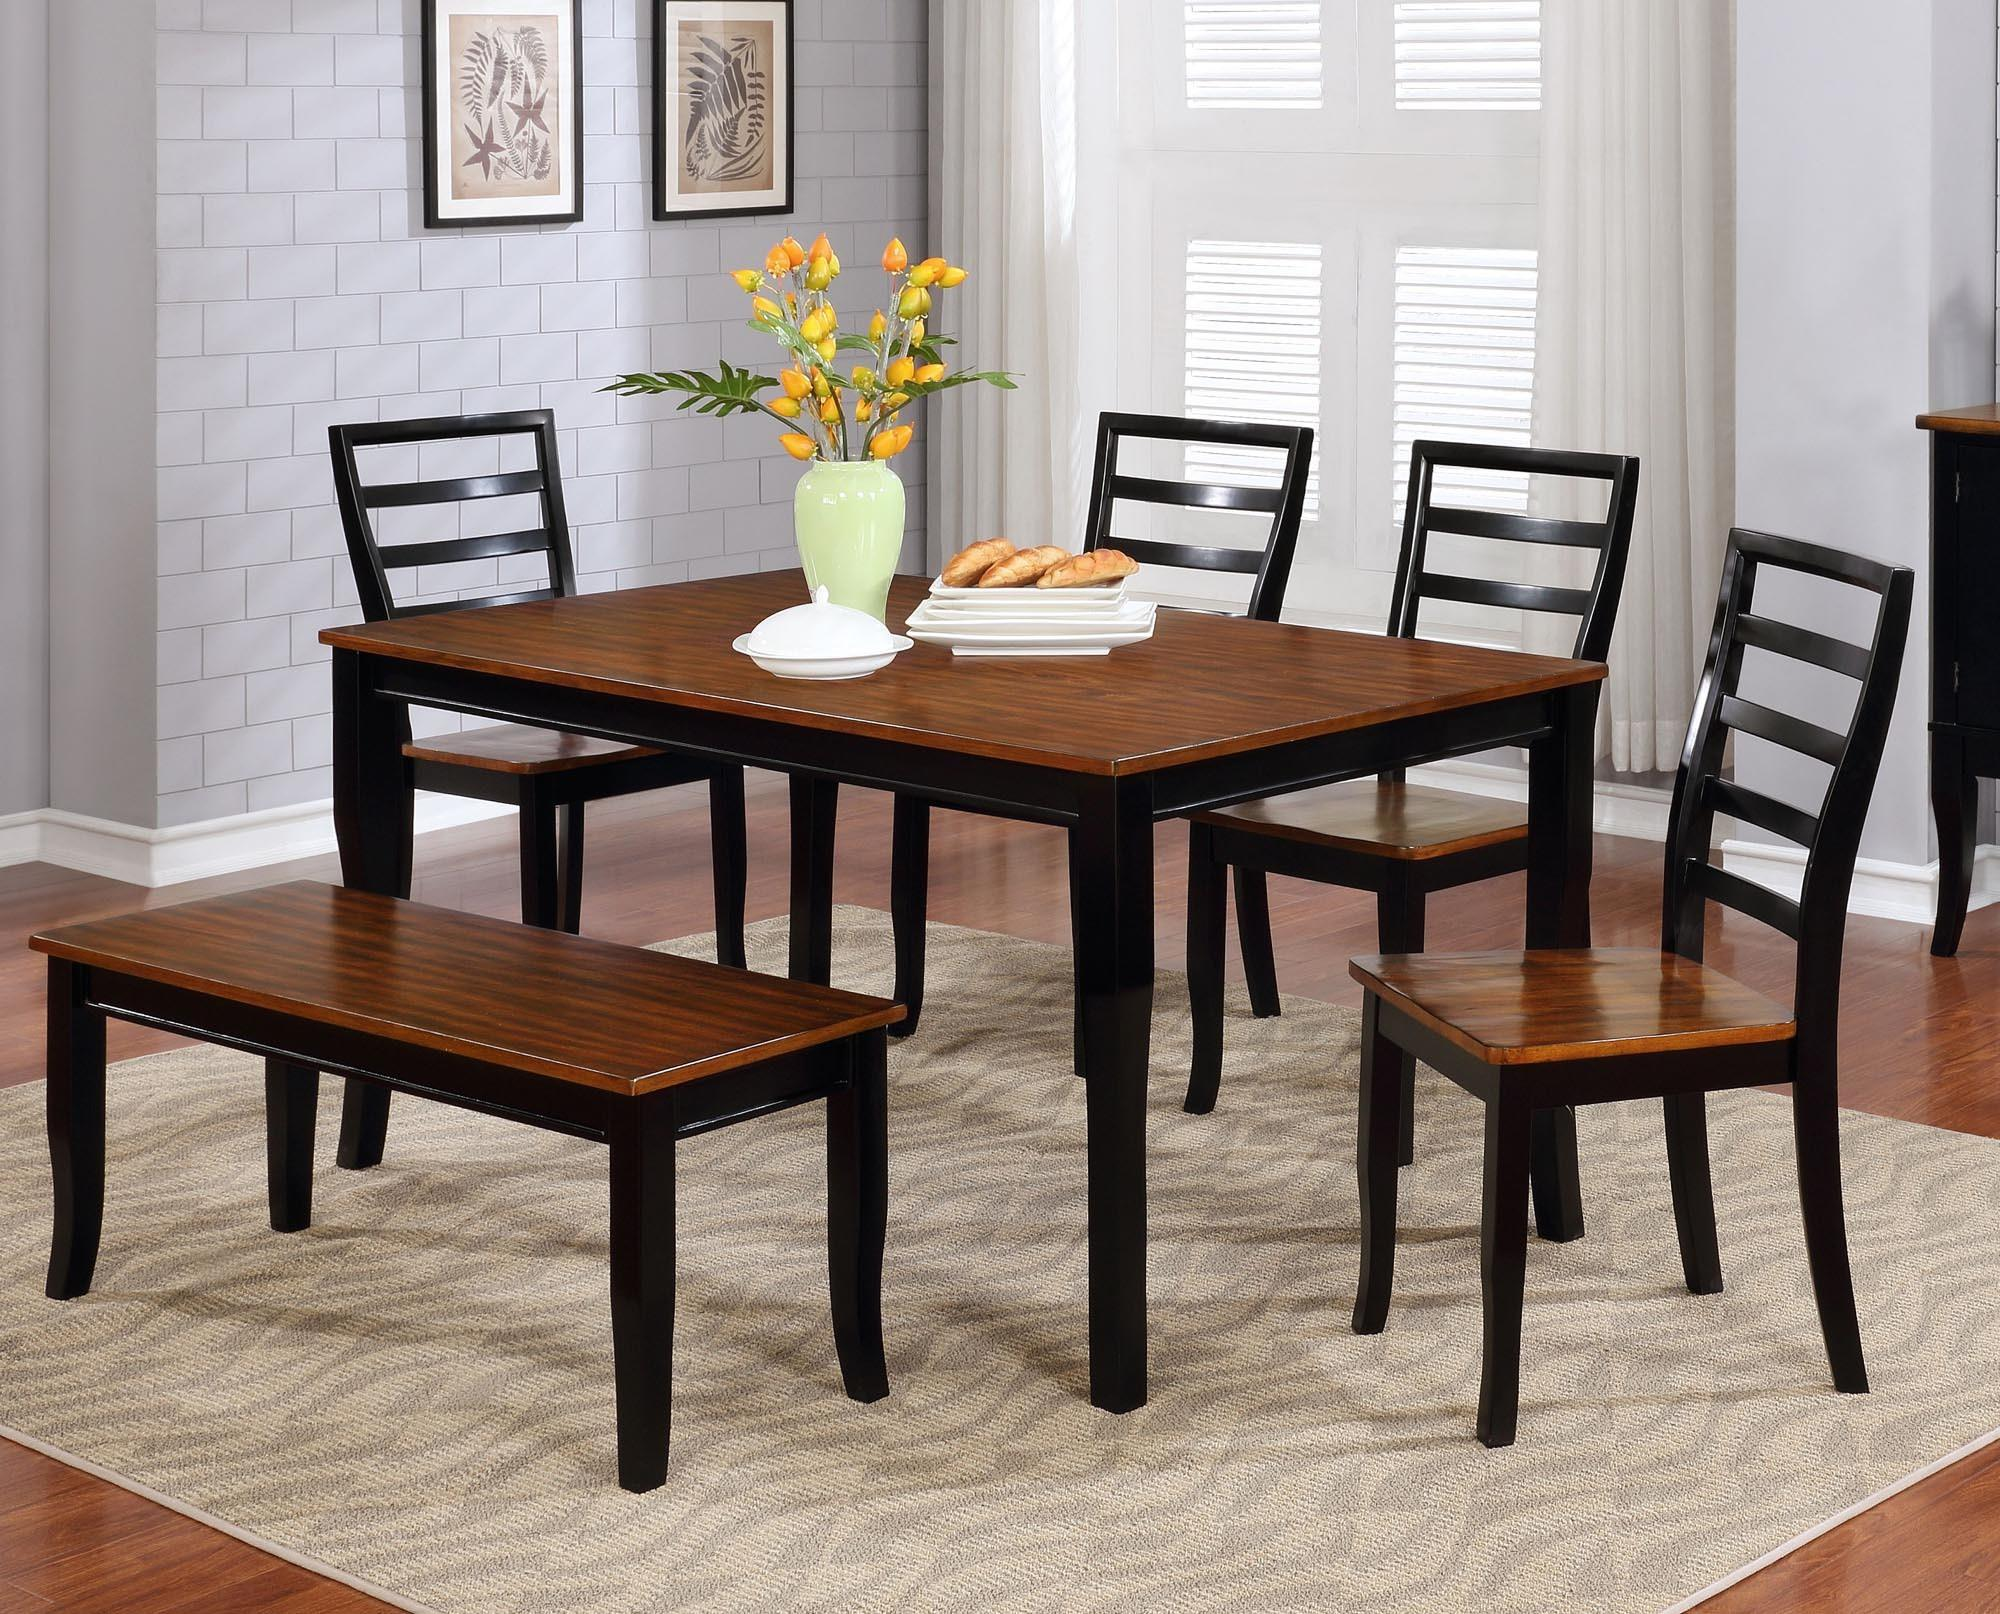 owen dining set Image